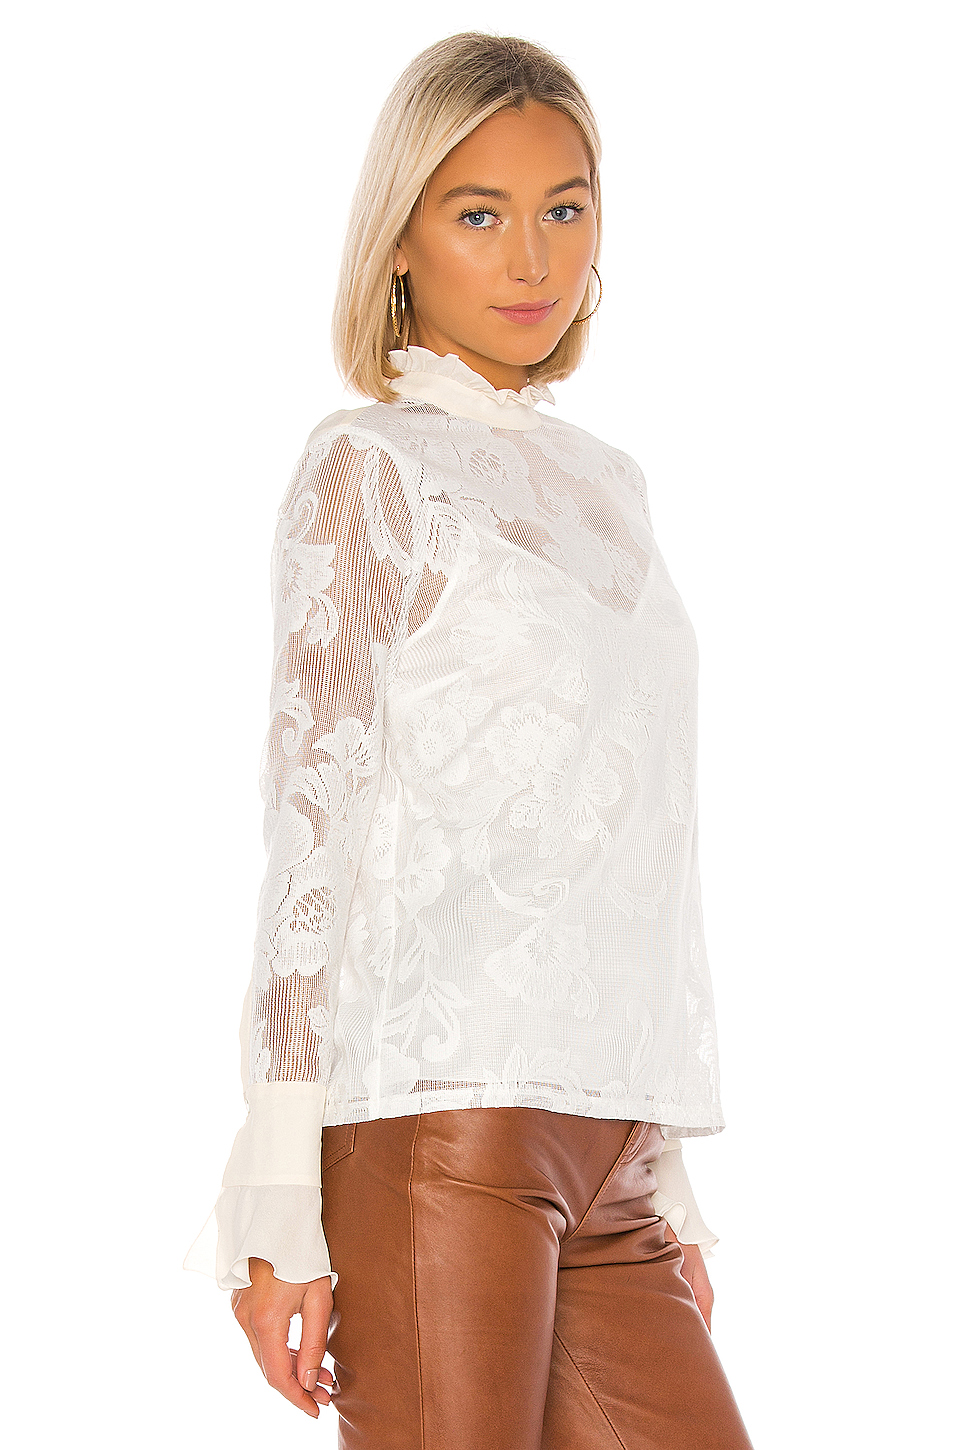 2543031c000121 Buy Original See By Chloe Lace Blouse at Indonesia   BOBOBOBO